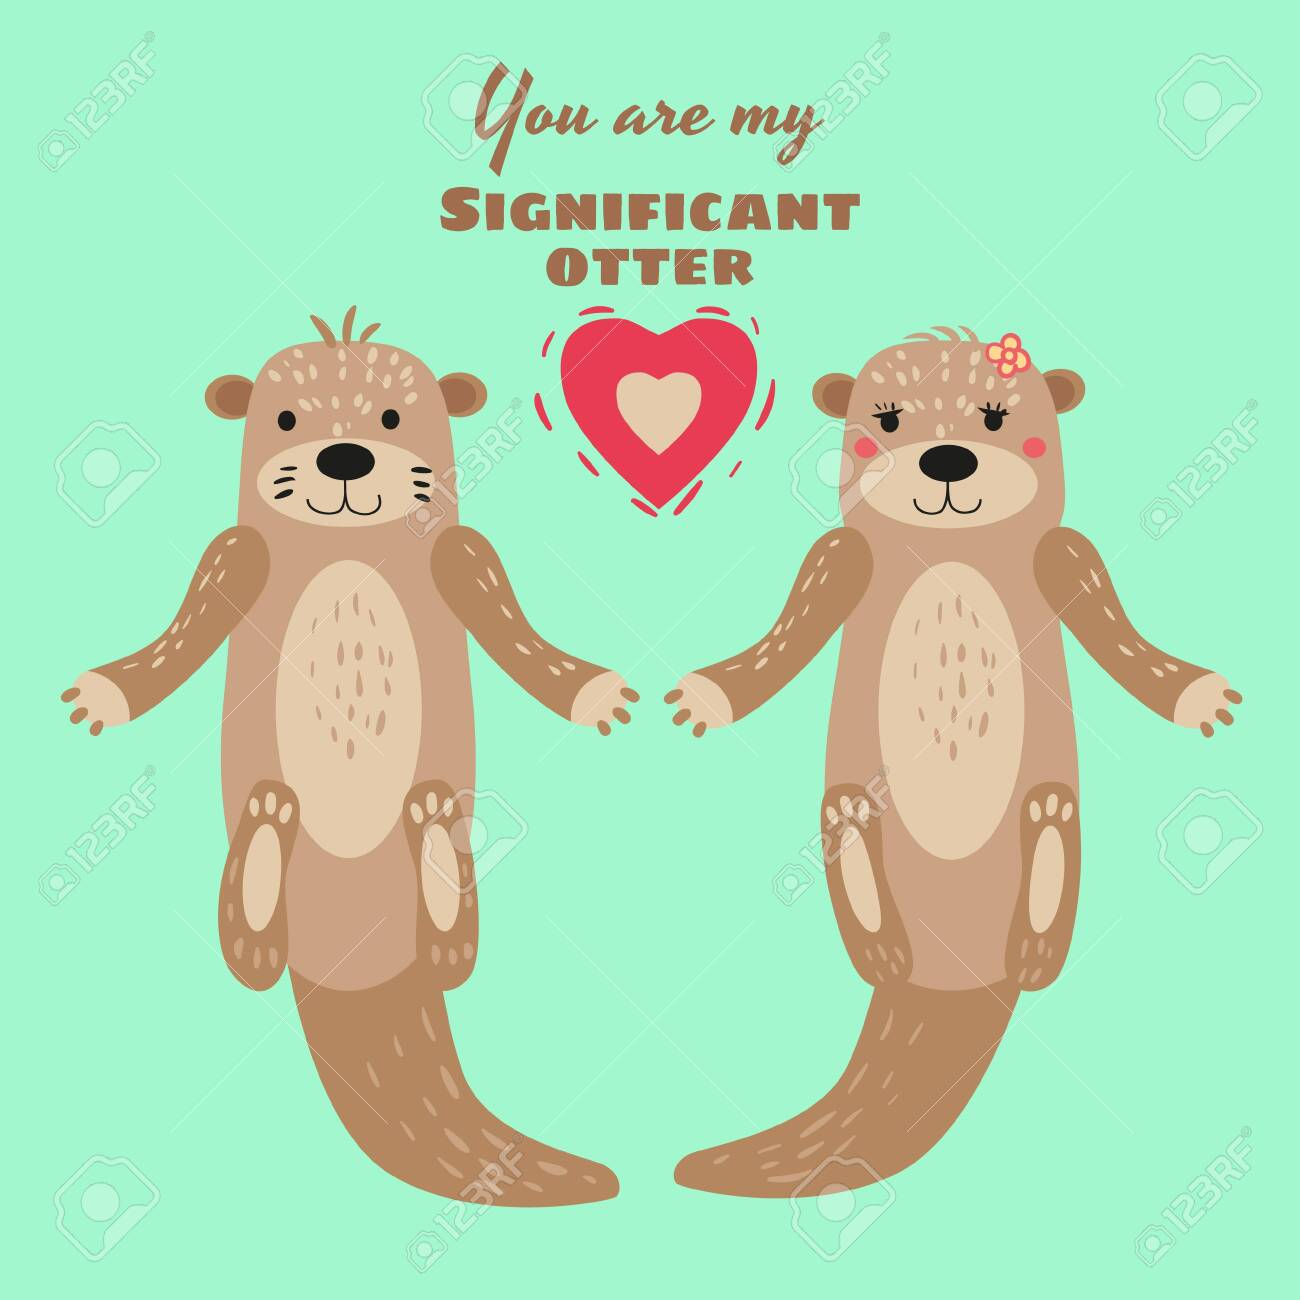 Thank you Otter couple hand drawn gift card Note card Birthday card Sweet otters holding hands greetings card Animal Valentines card